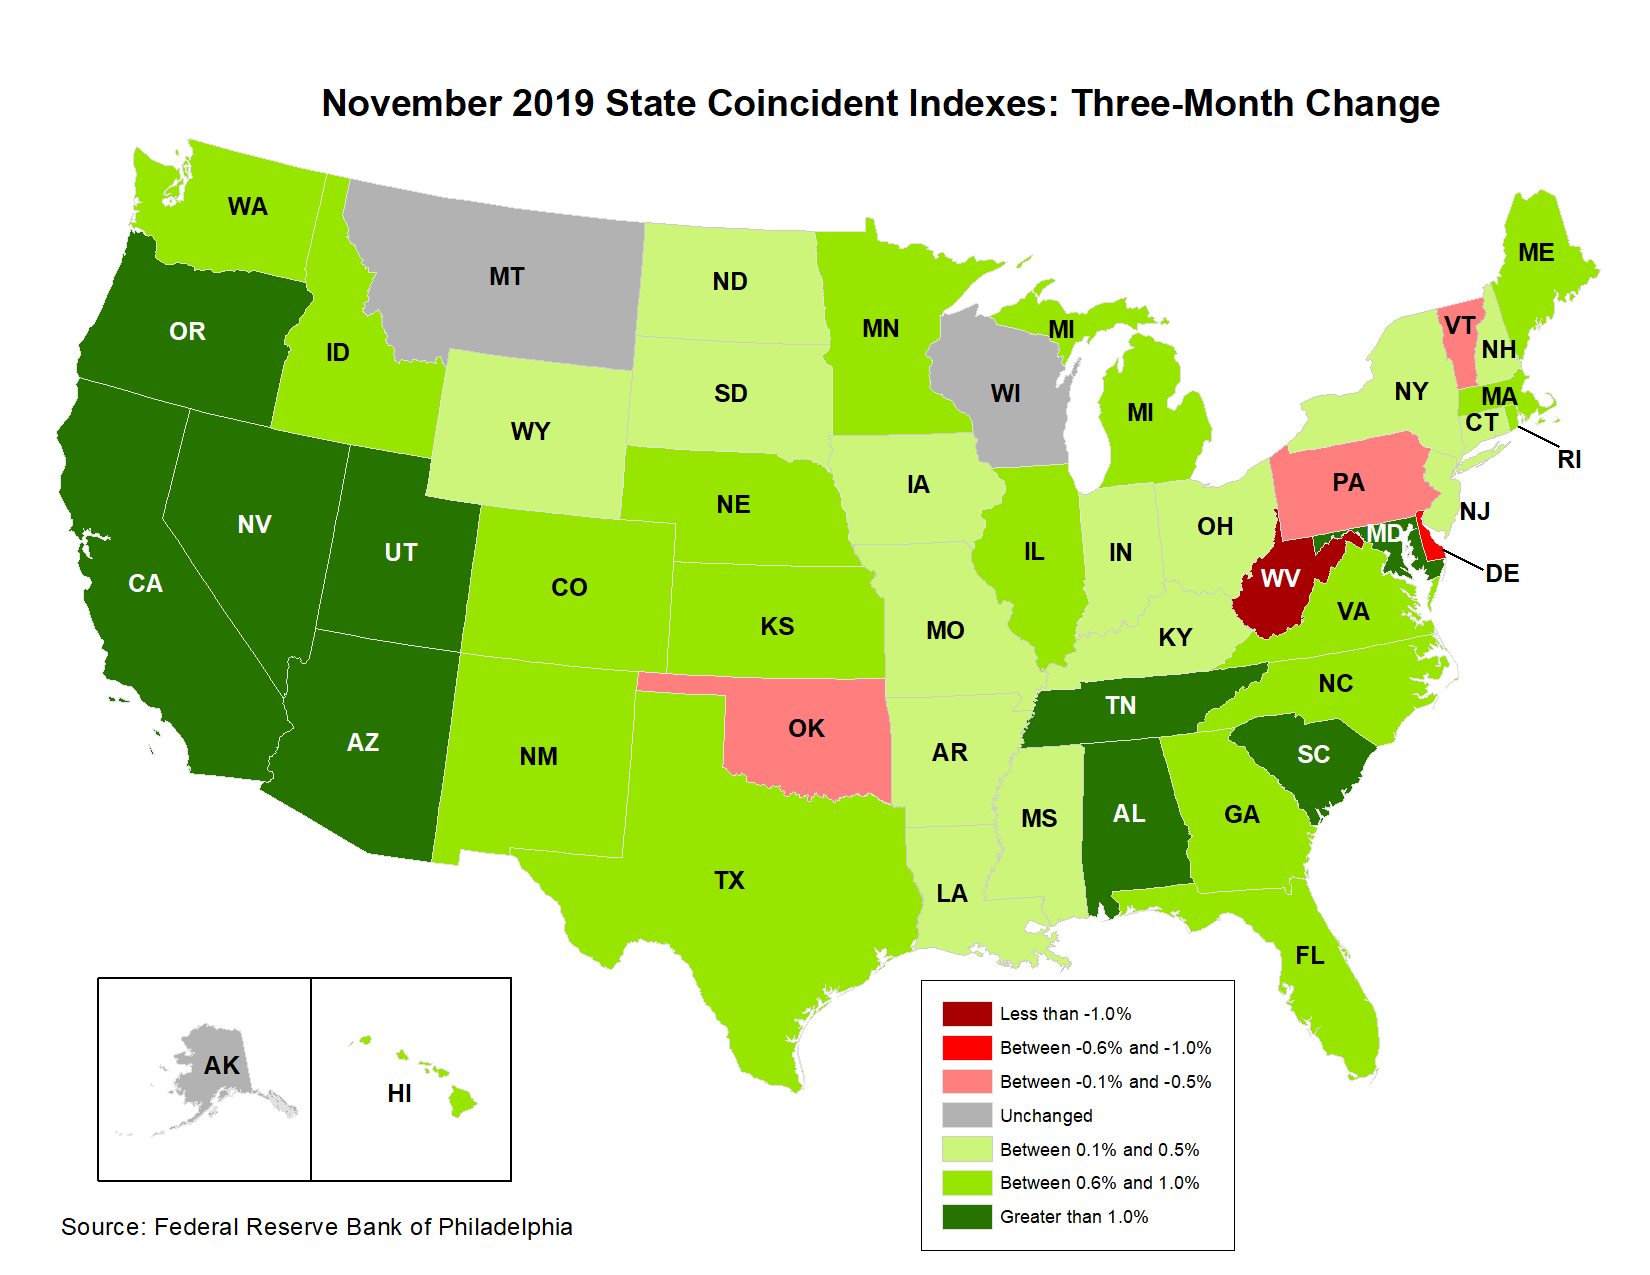 Map of the U.S. showing the State Coincident Indexes Three-Month Change in November 2019